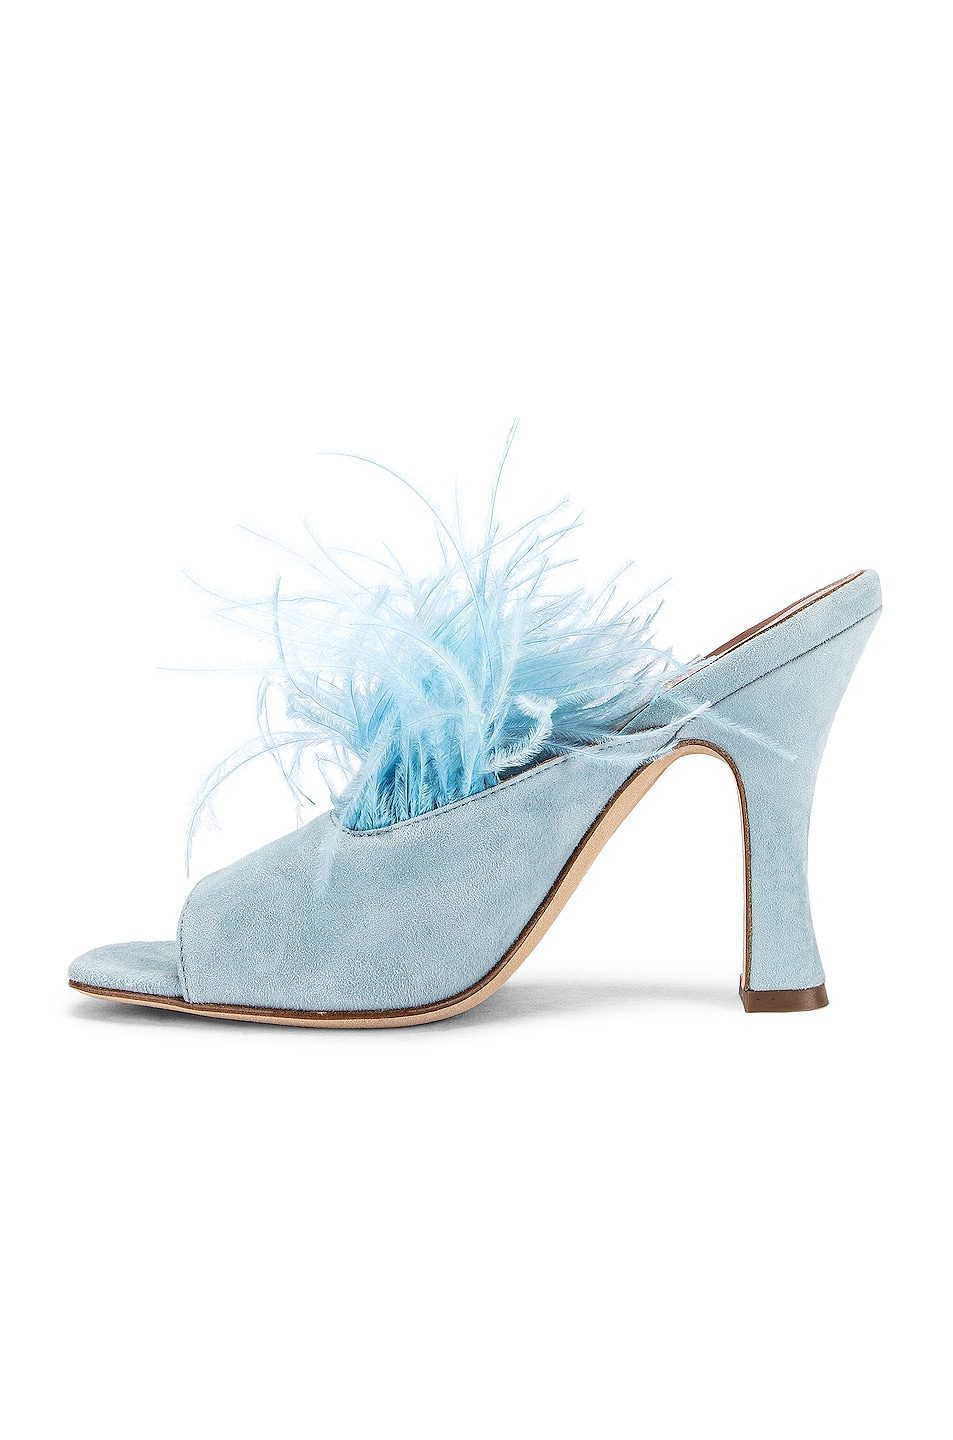 Image 5 of Paris Texas Suede Square Toe Mule with Marabou Feathers in Light Blue